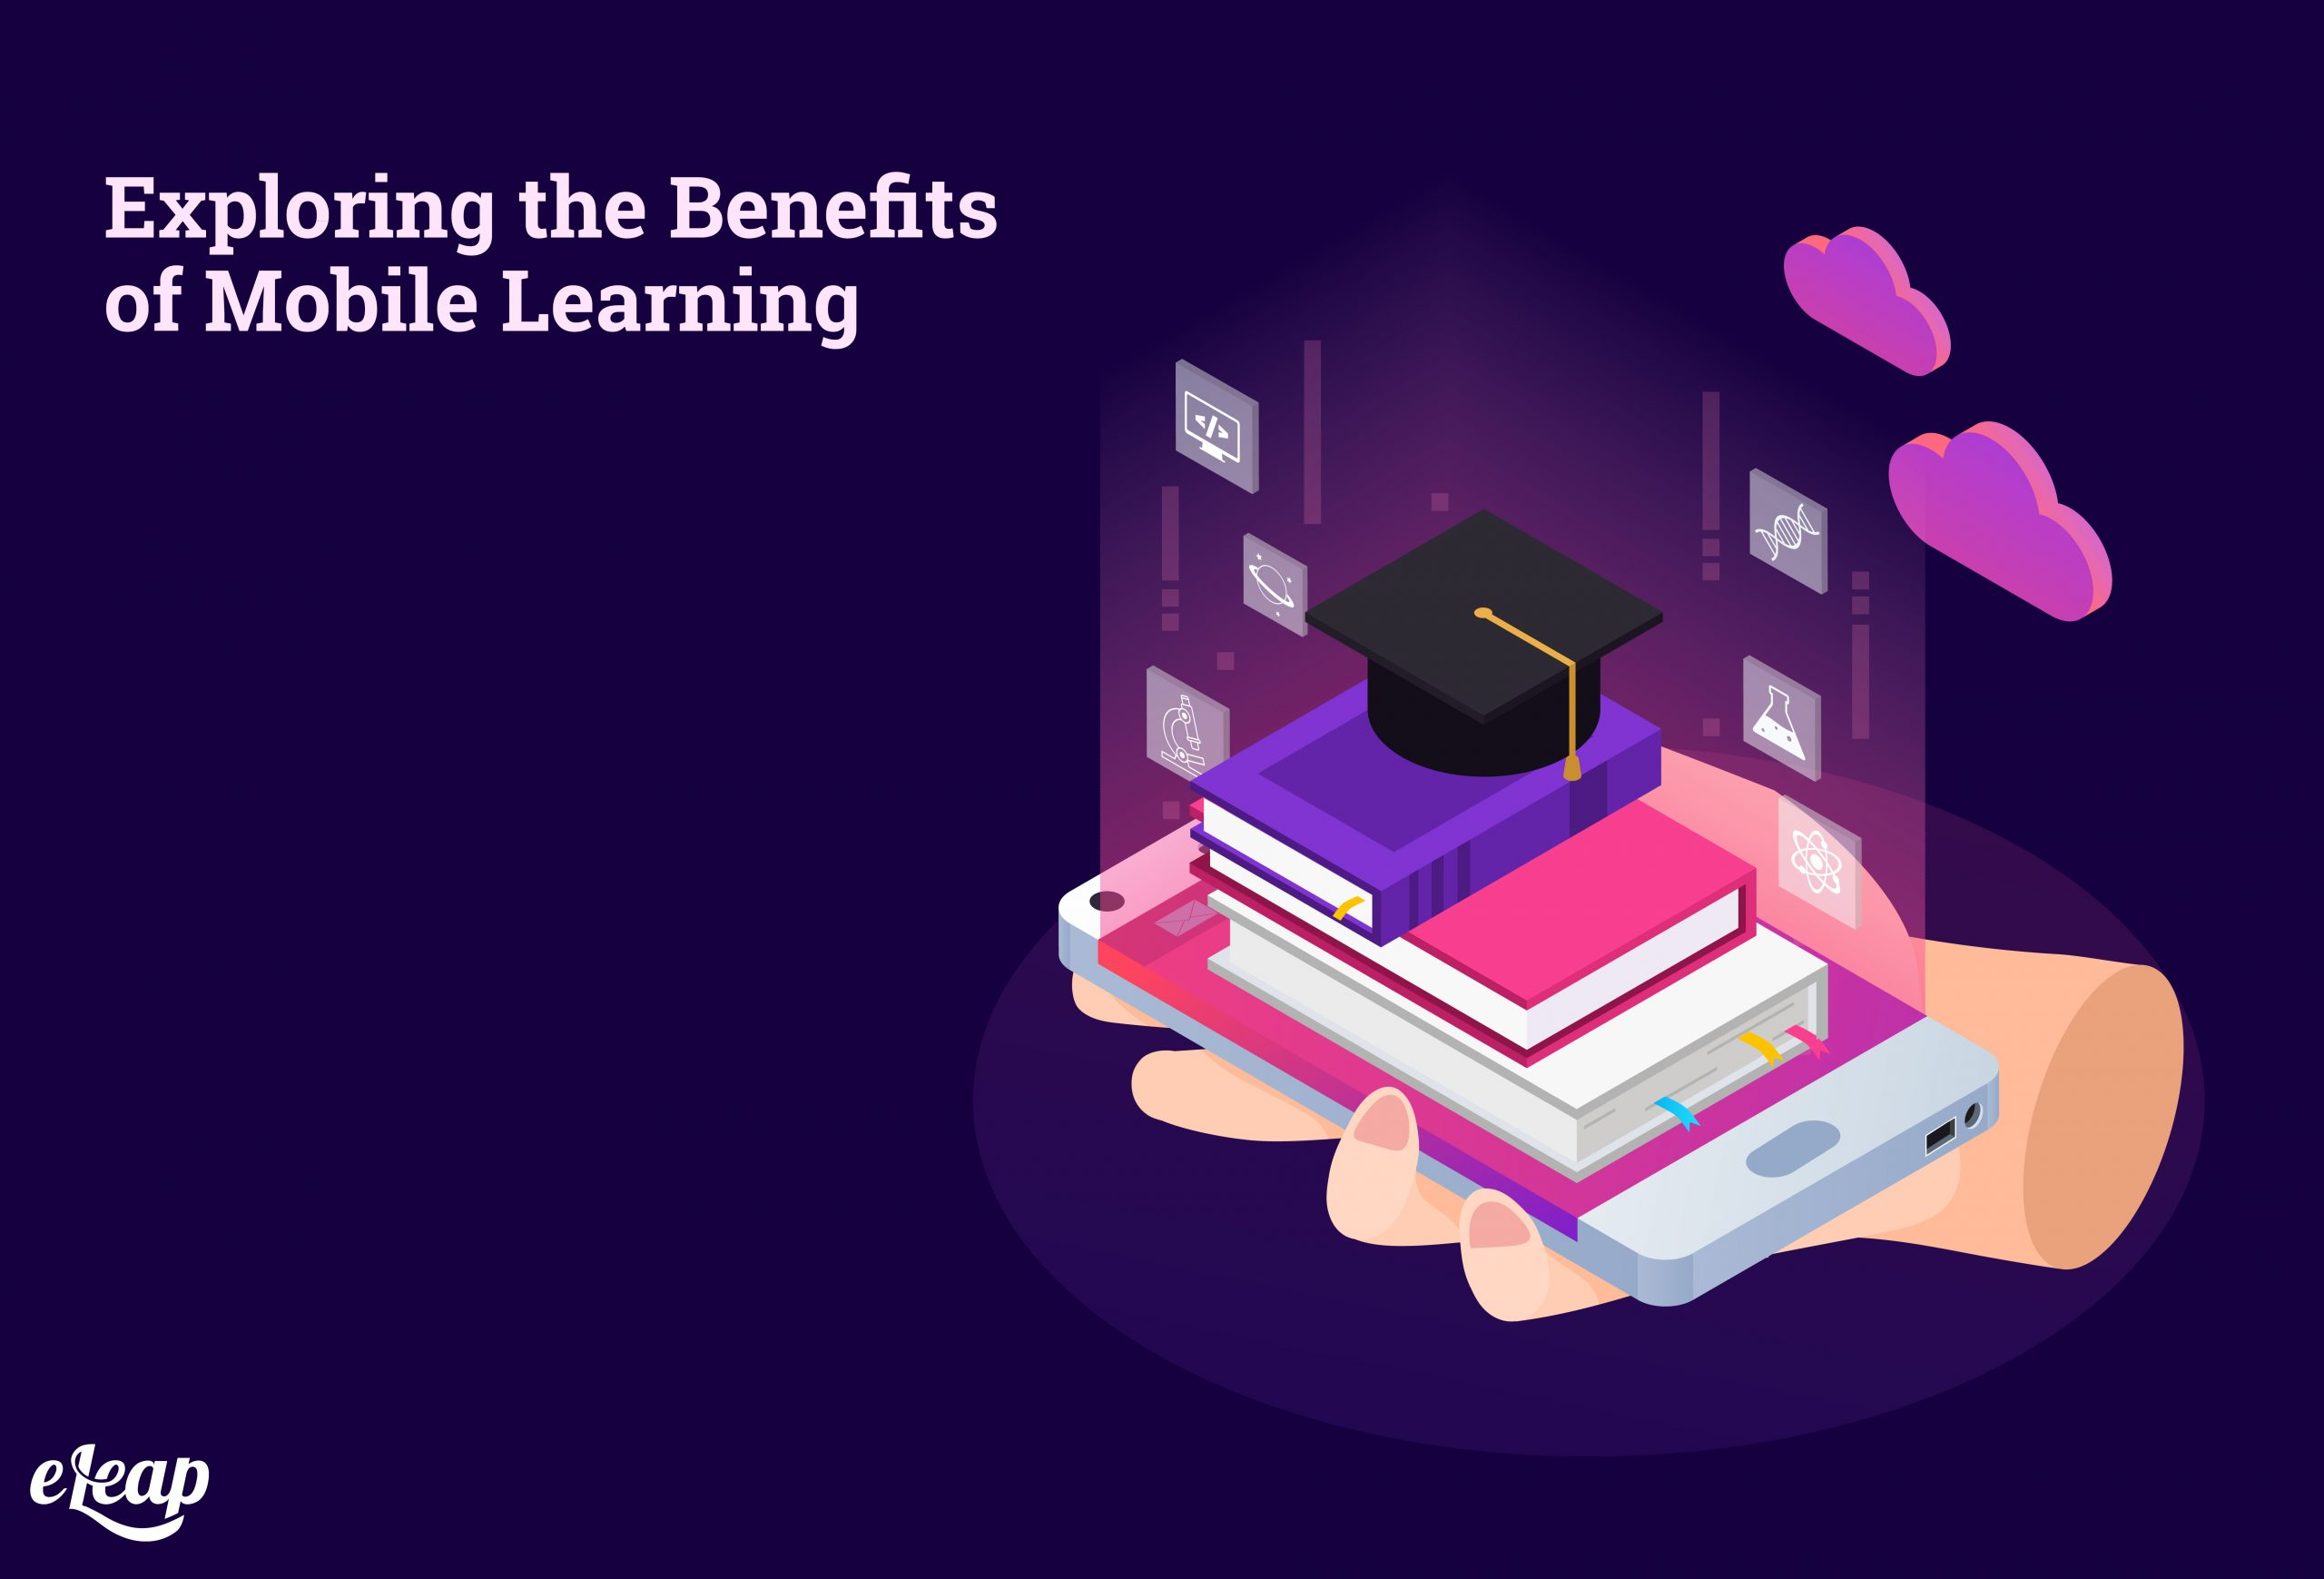 Exploring the Benefits of Mobile Learning